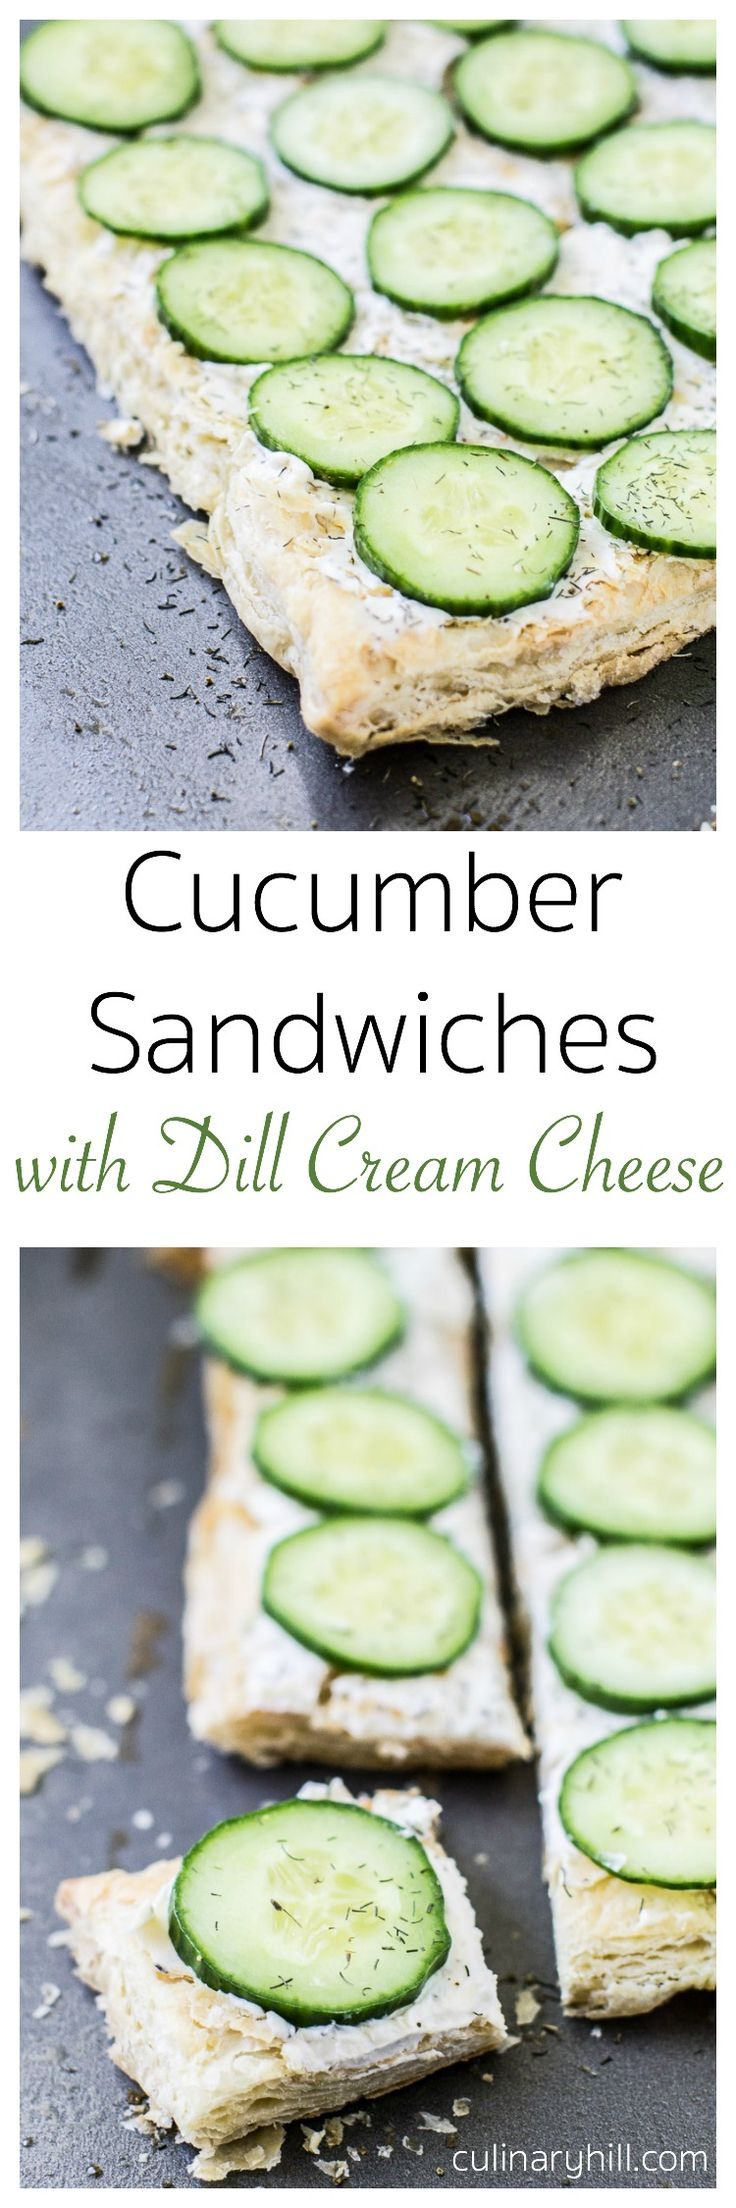 Cucumber Sandwiches are an easy, crowd-pleasing appetizer you'll make again and again! All the components can be made ahead of time and assembled in minutes.